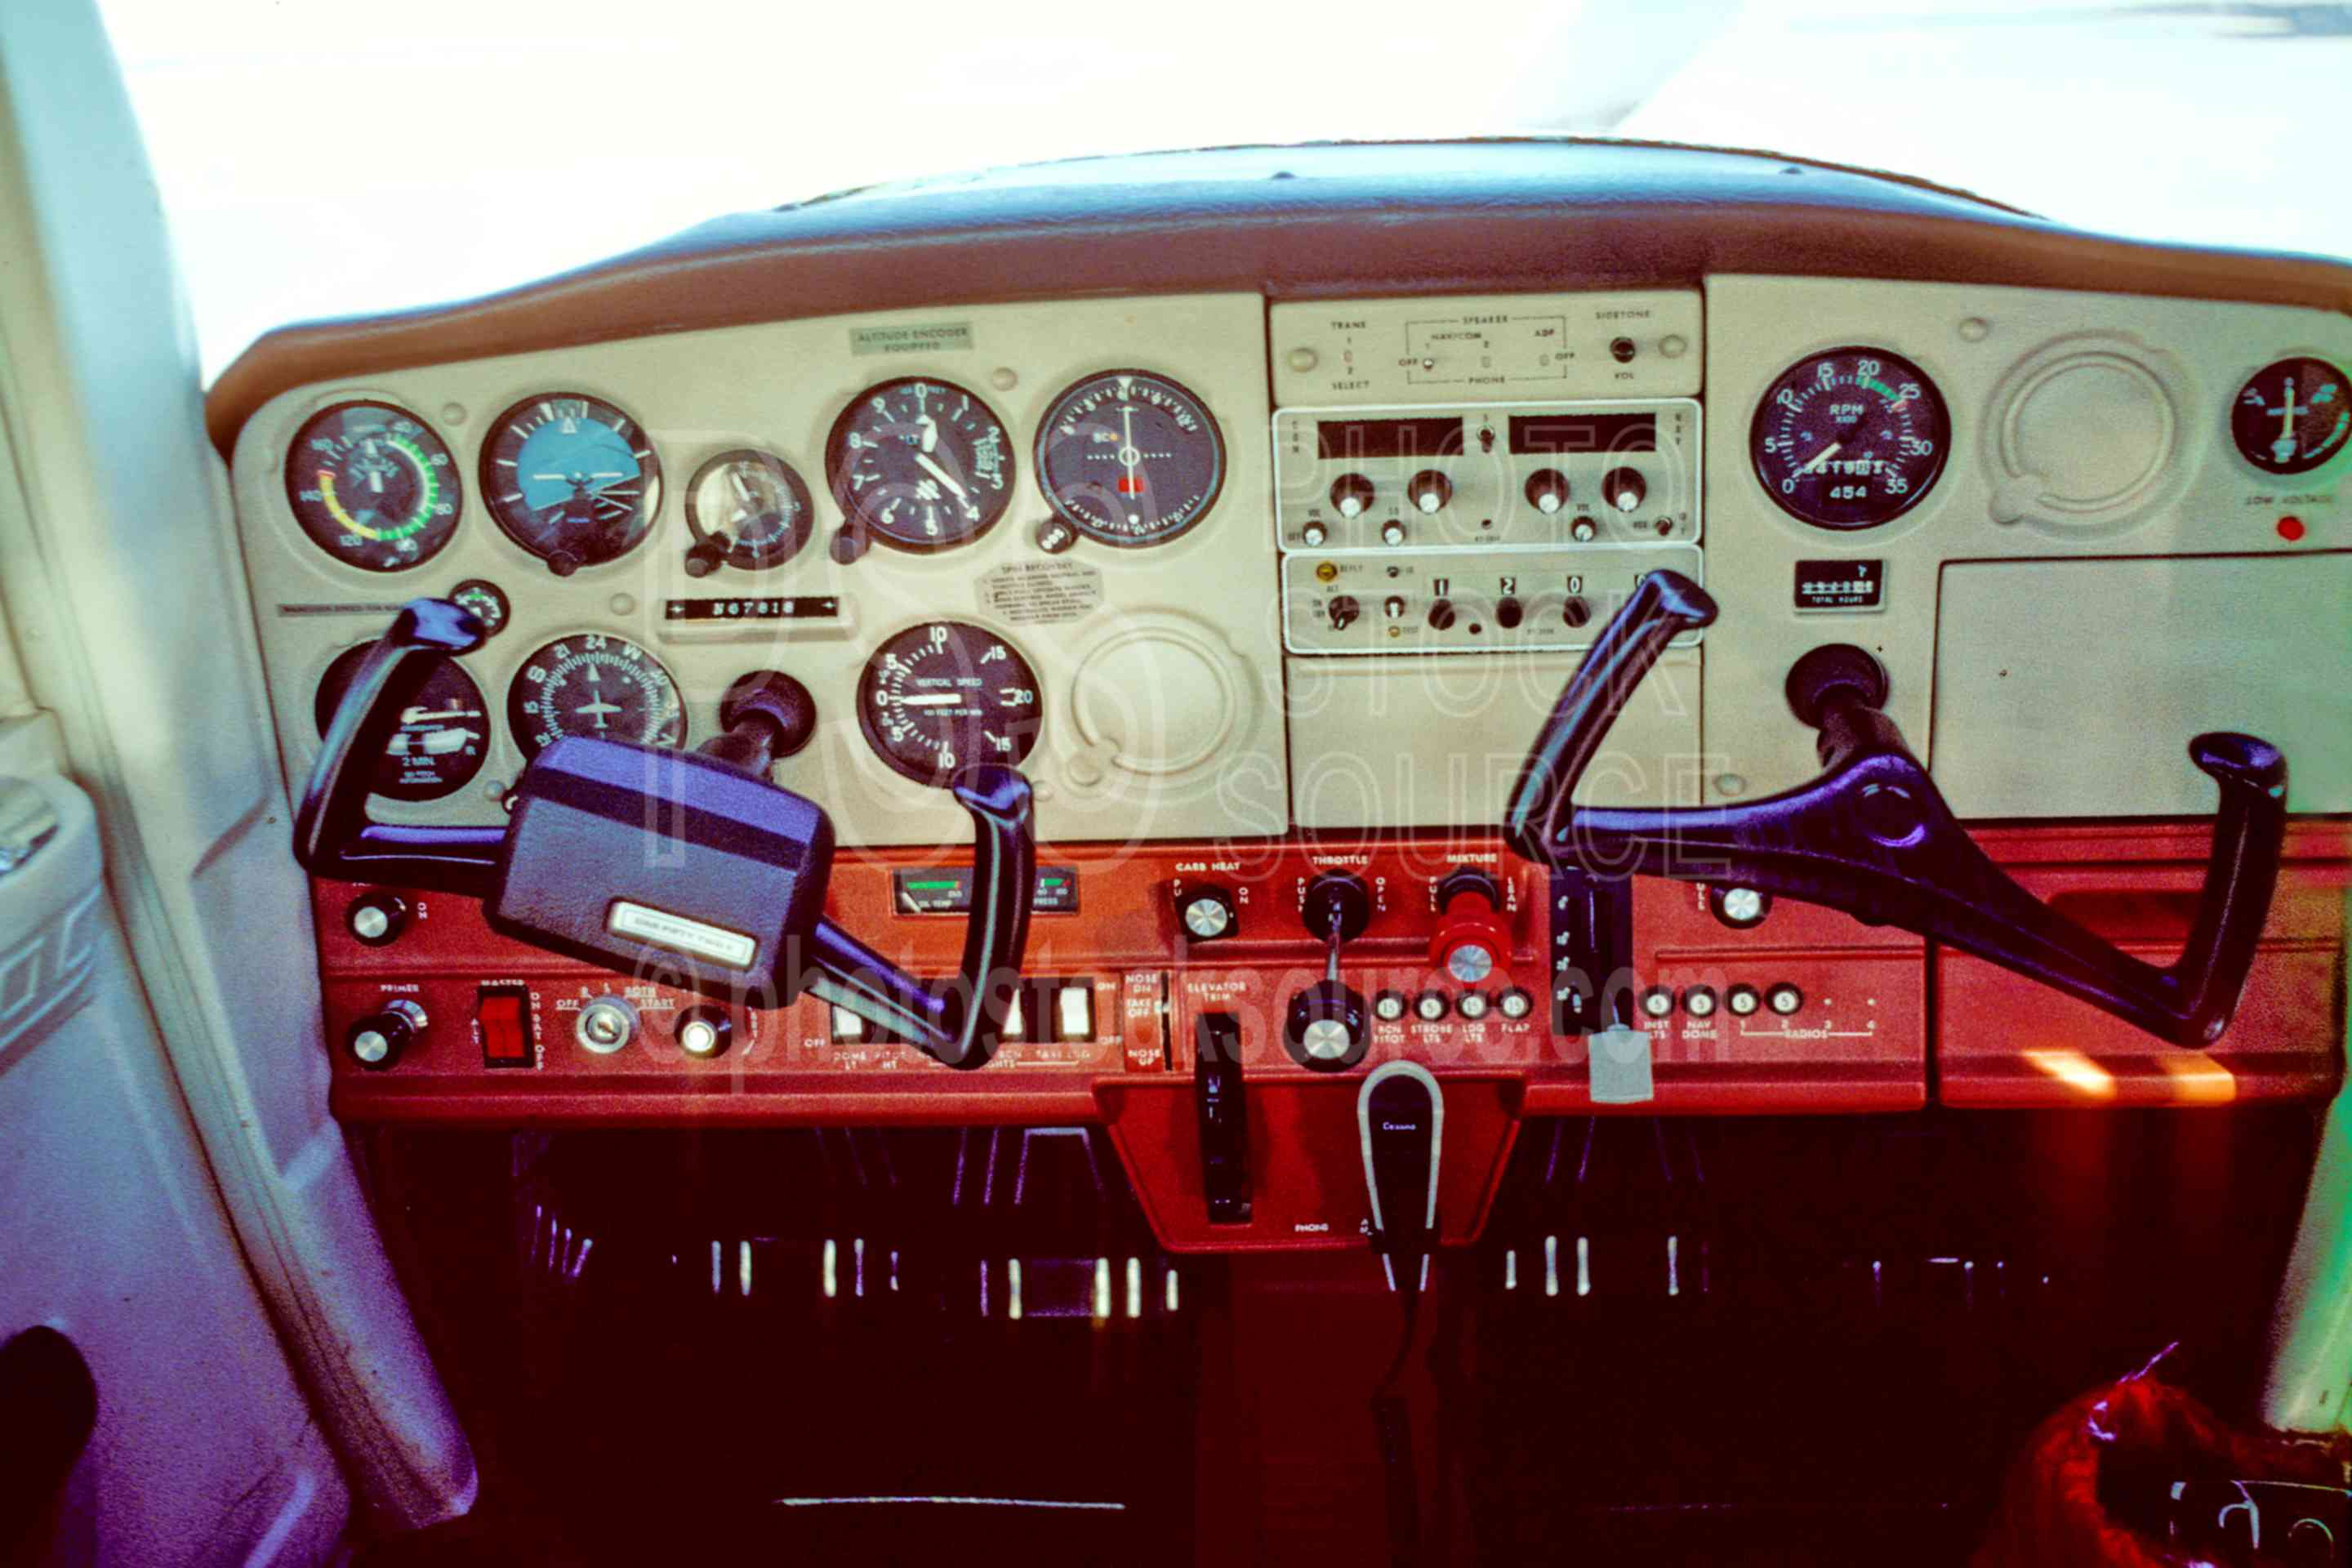 Cessna 152,instrument panel,controls,airplane,usas,airplanes,aeronautics